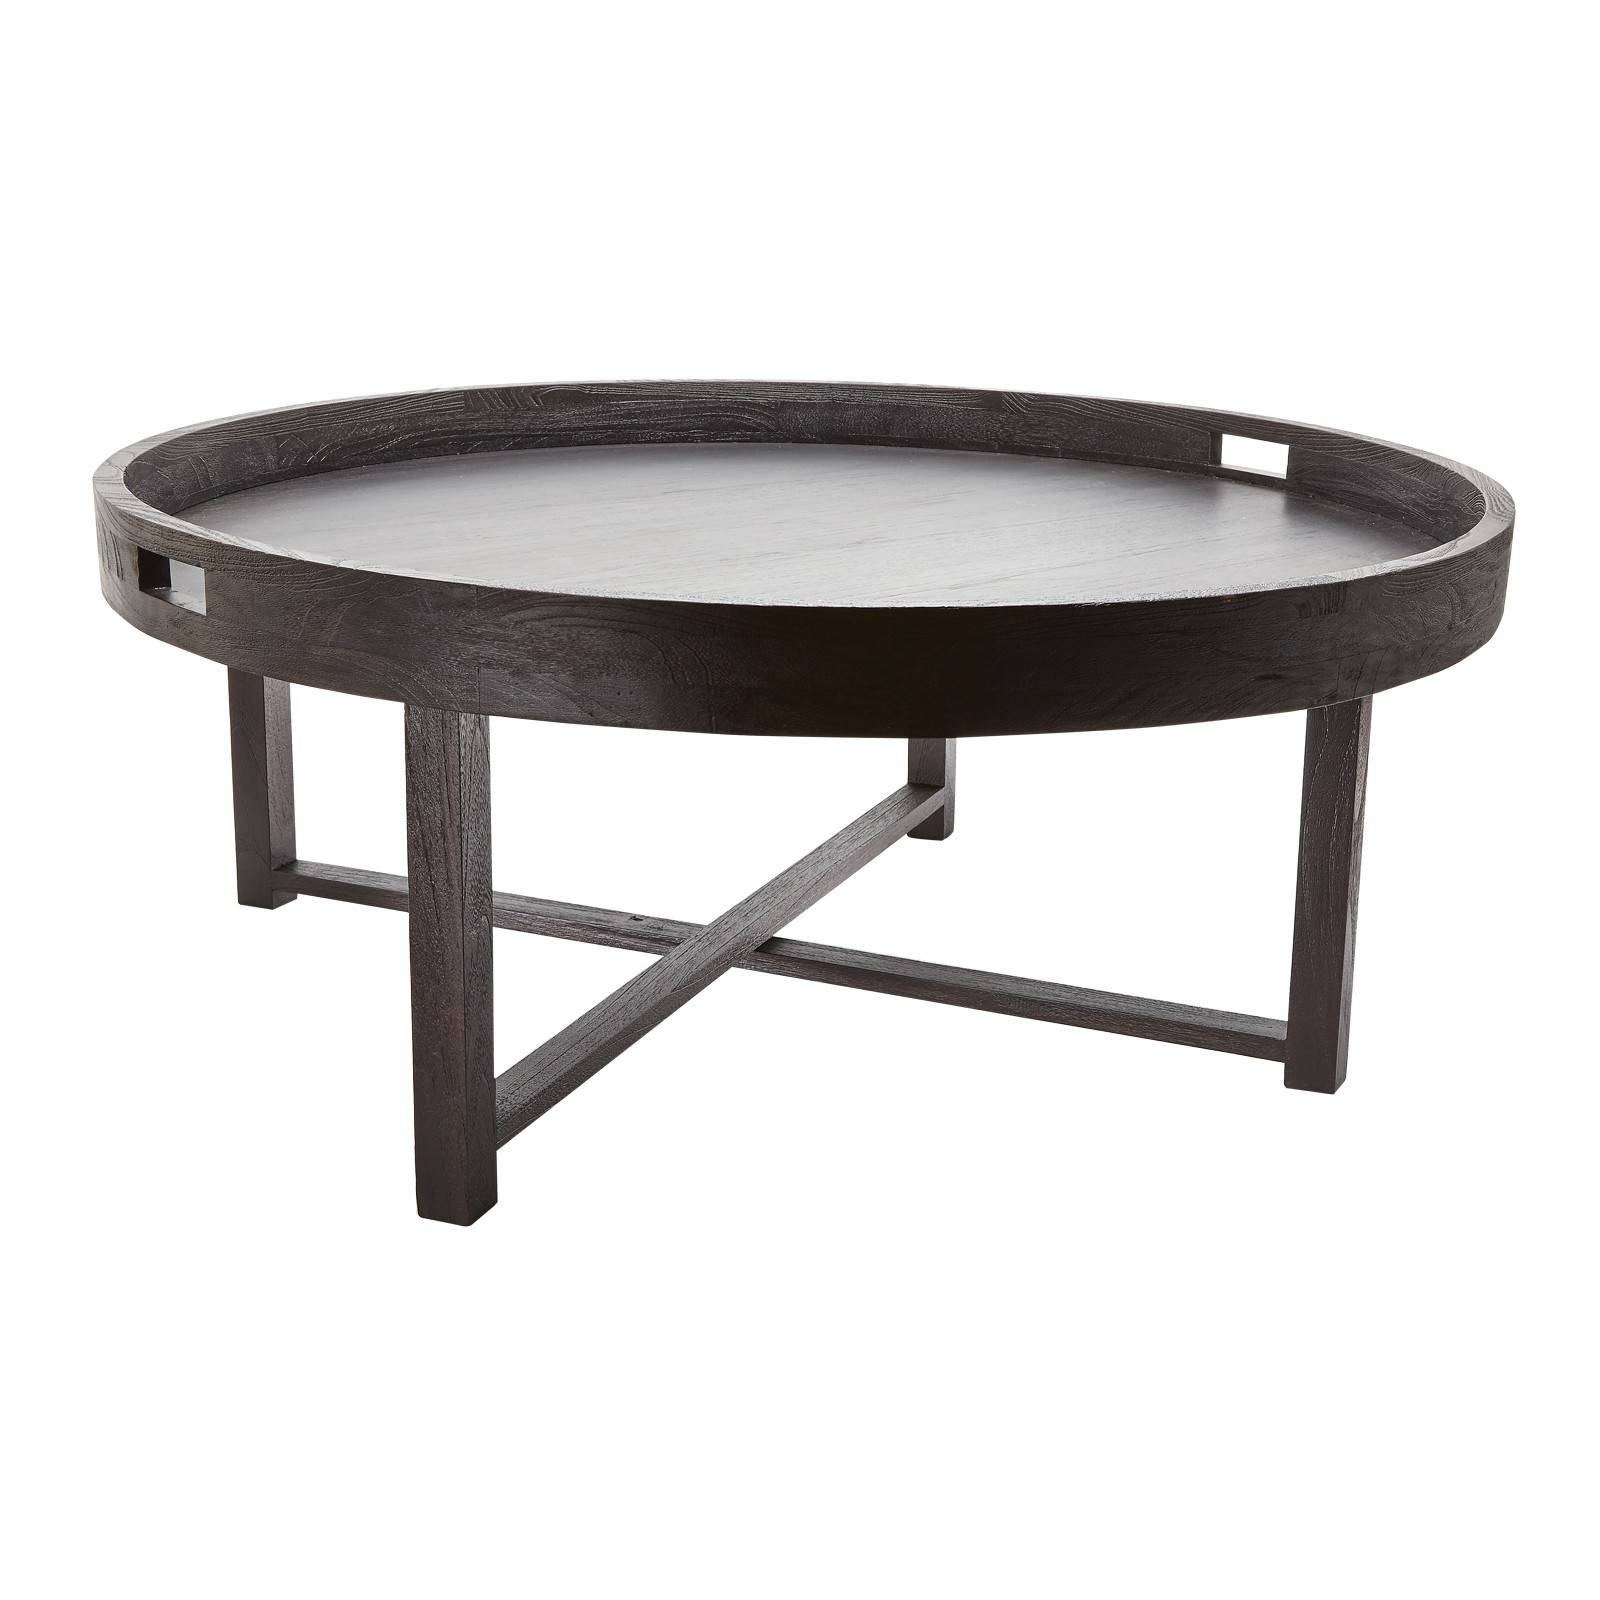 Round Metal Tray Coffee Table Rascalartsnyc